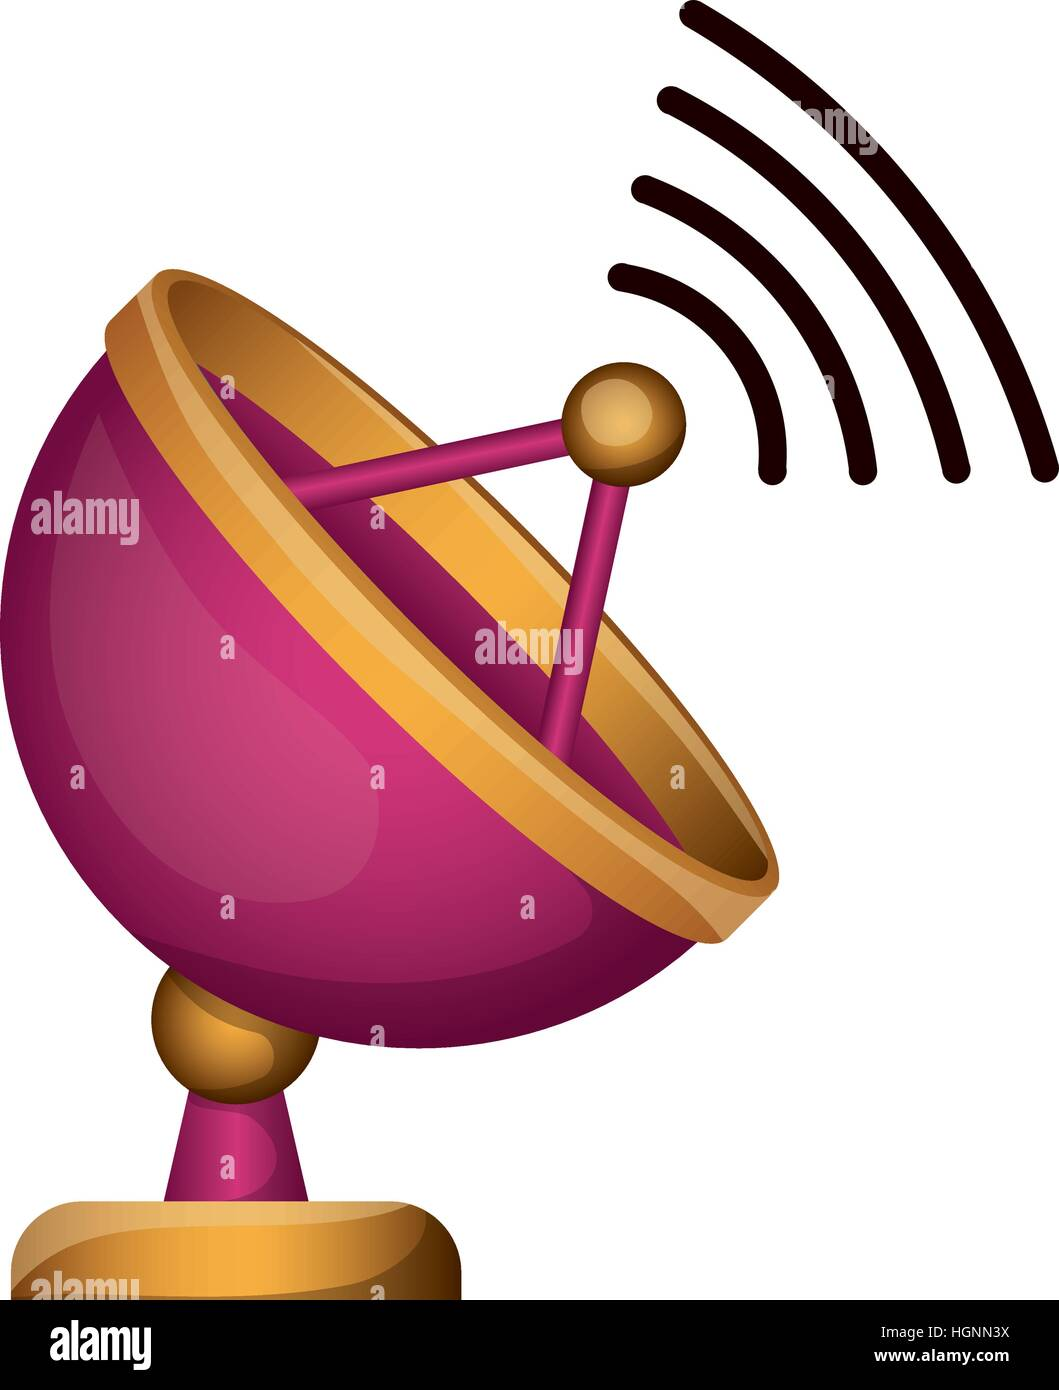 Antenna icon. Signal broadcast internet and technology theme. Isolated design. Vector illustration - Stock Image